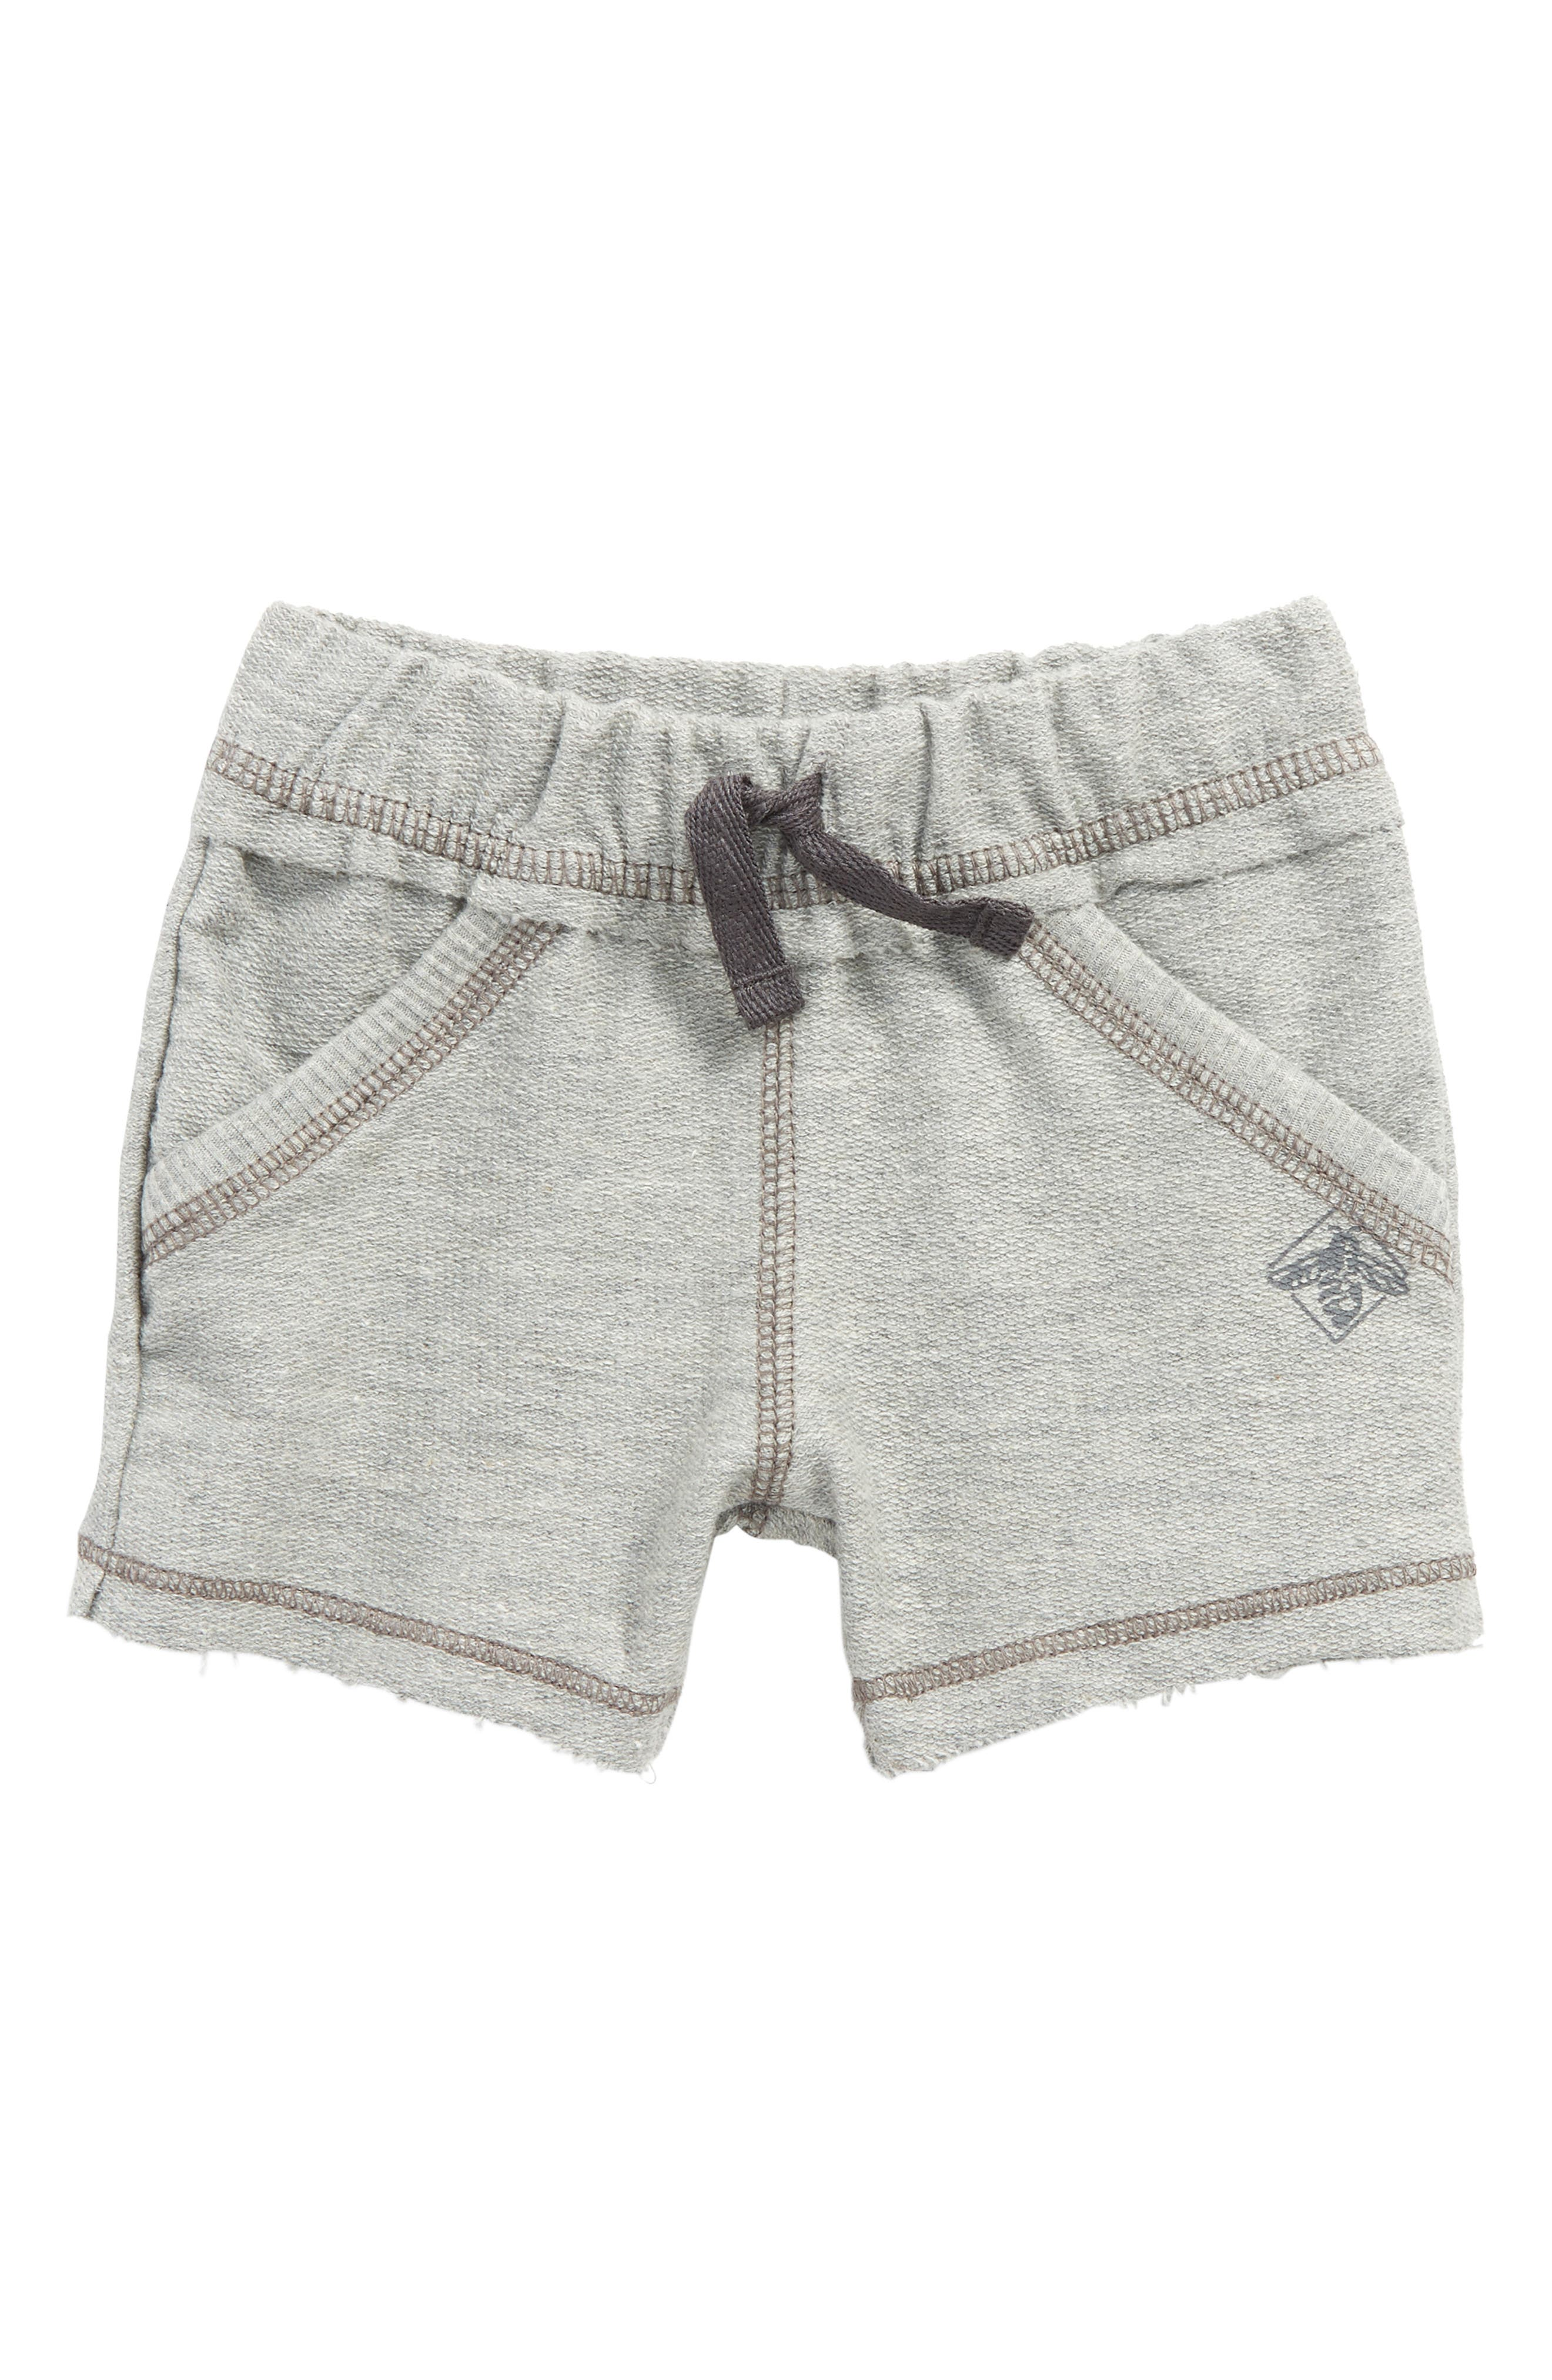 Organic Cotton French Terry Shorts,                         Main,                         color, 050